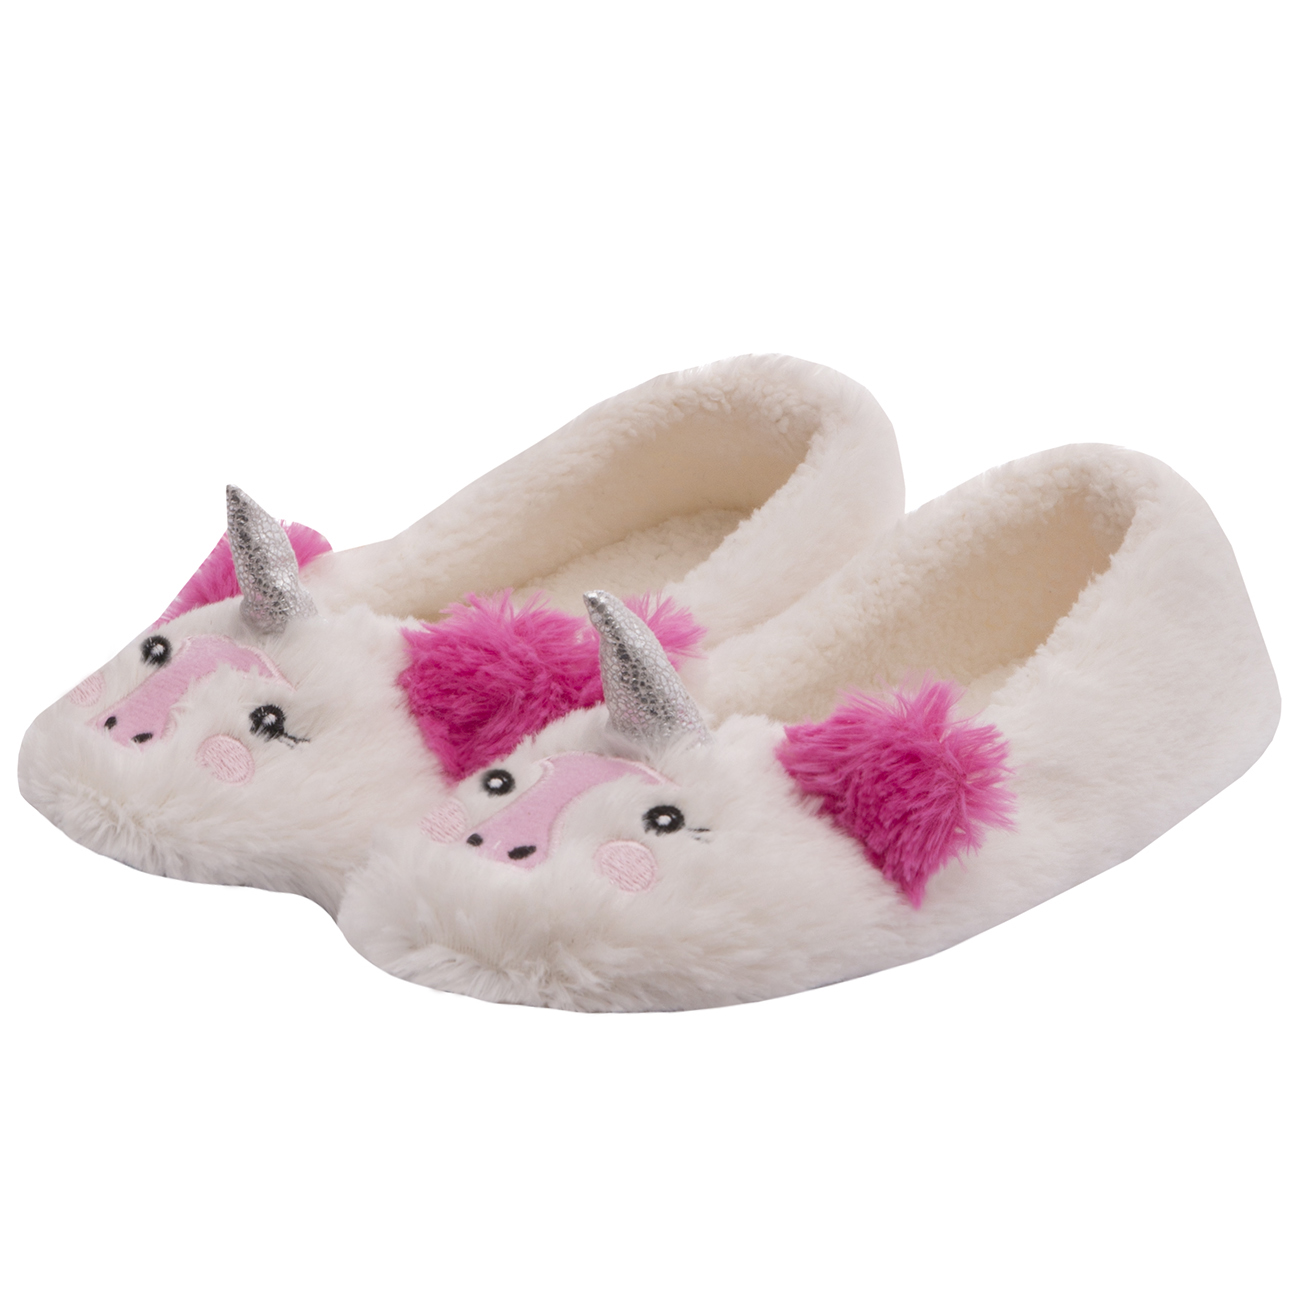 WOMENS GIRLS WARM FUN NOVELTY SLIPPERS SELECTION BOOTIES